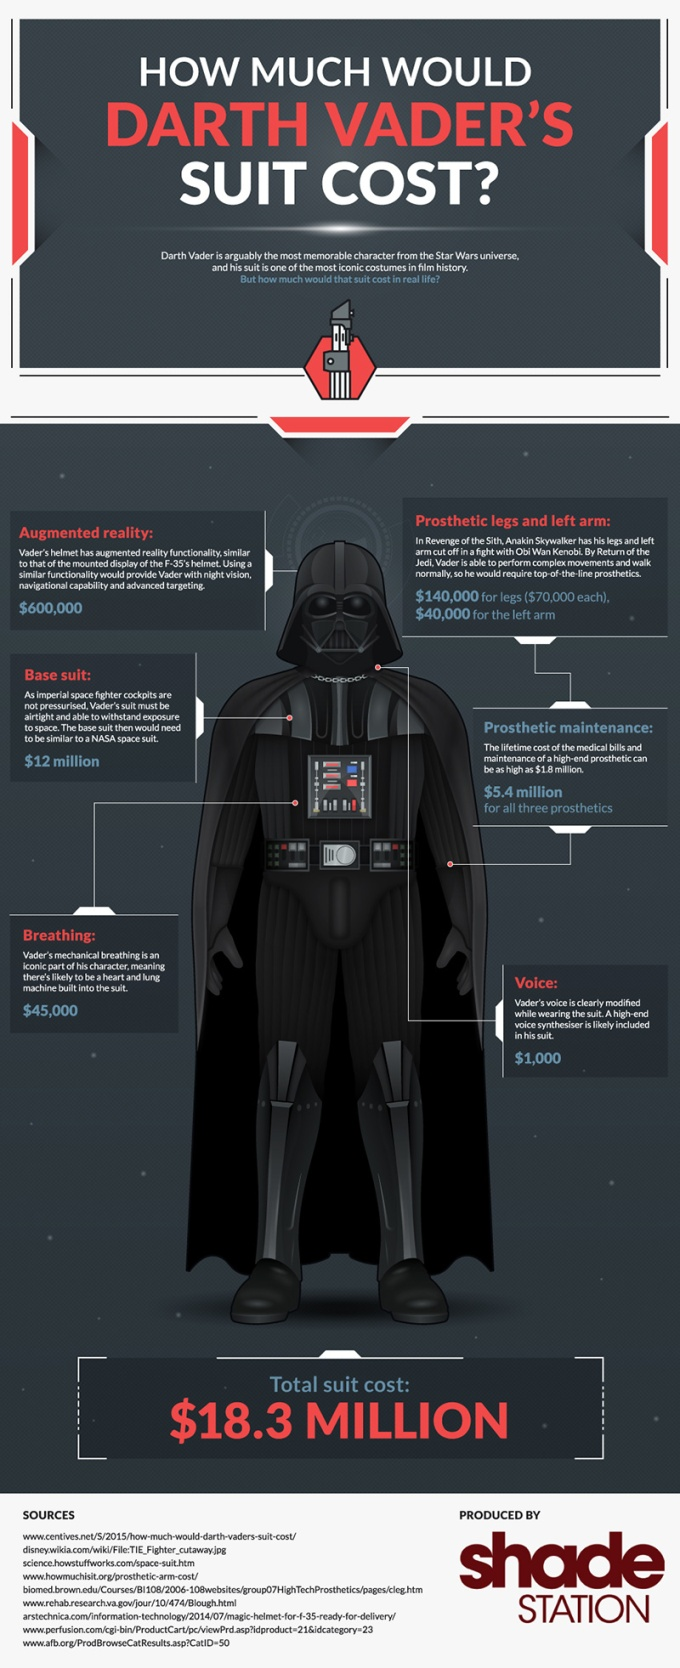 darth-vader-suit-cost-infographic